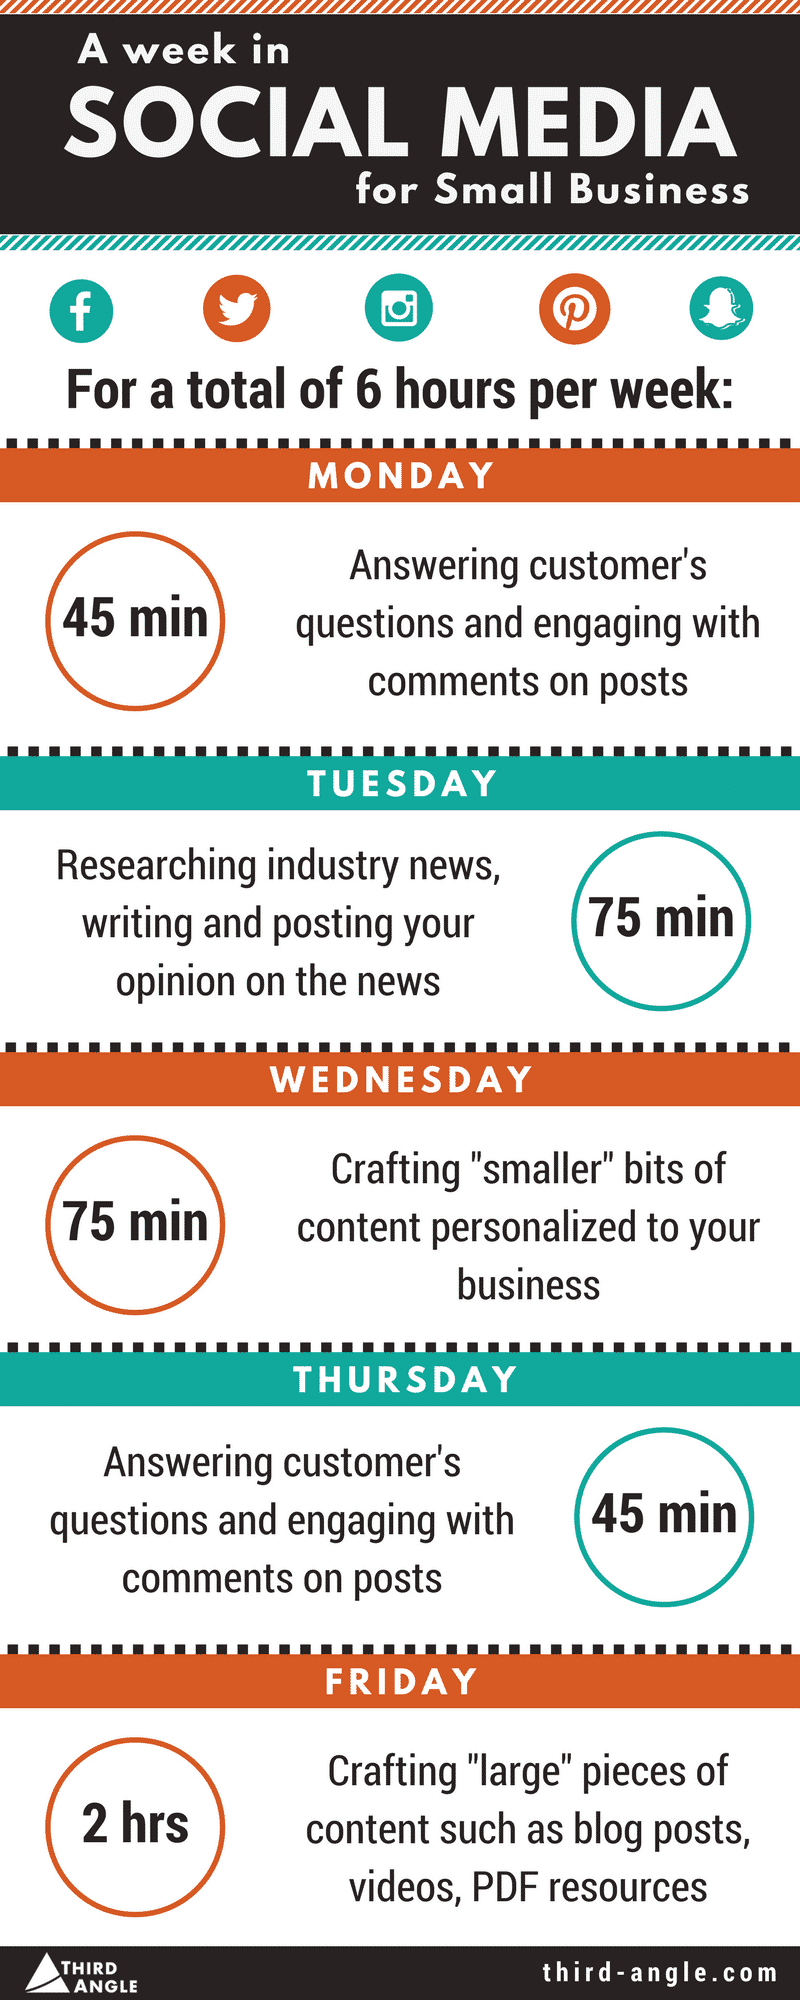 A week in social media for small businesses infographic